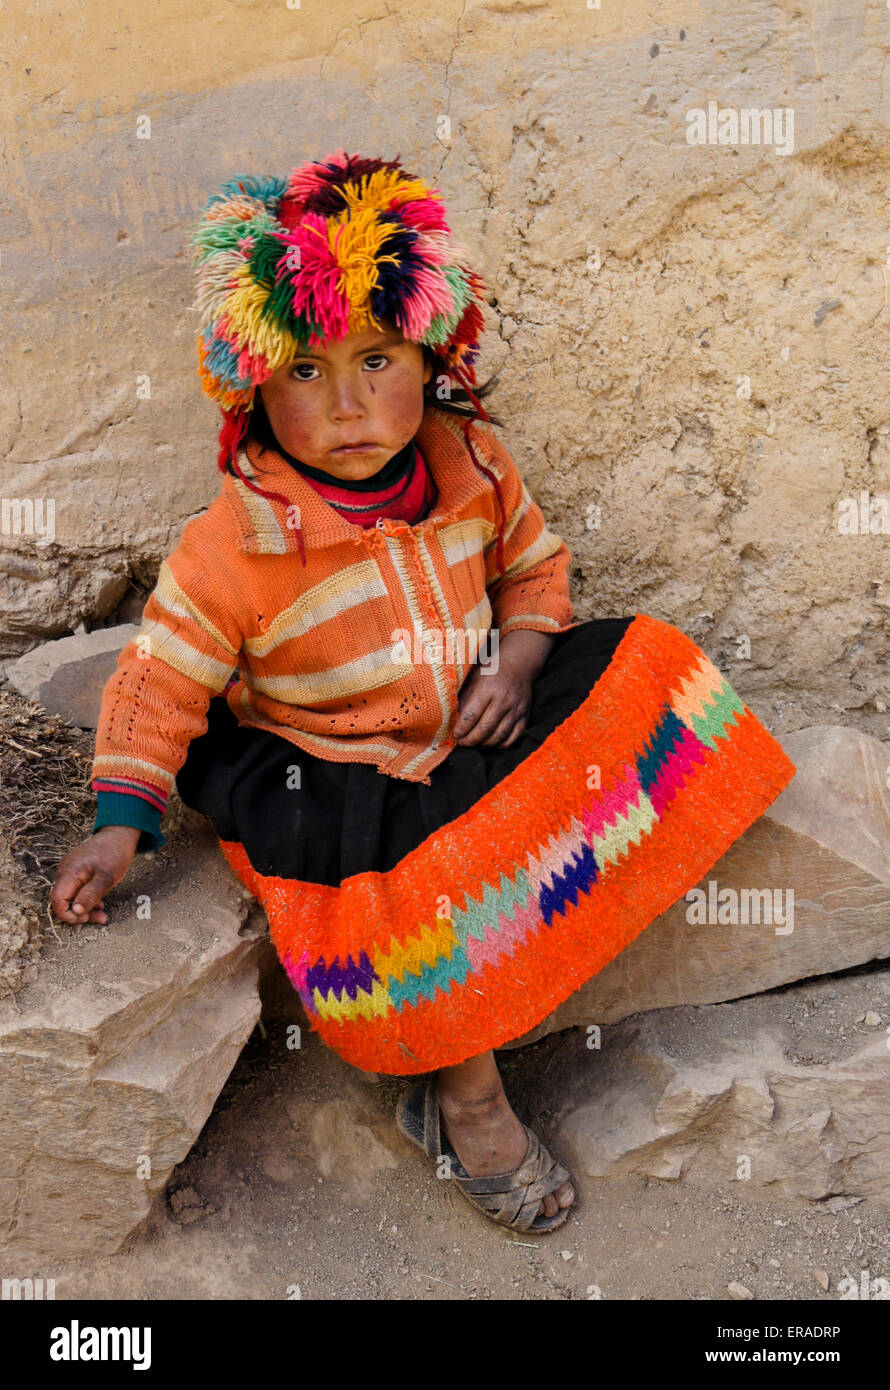 Quechua Indian girl, Willoq, Peru - Stock Image